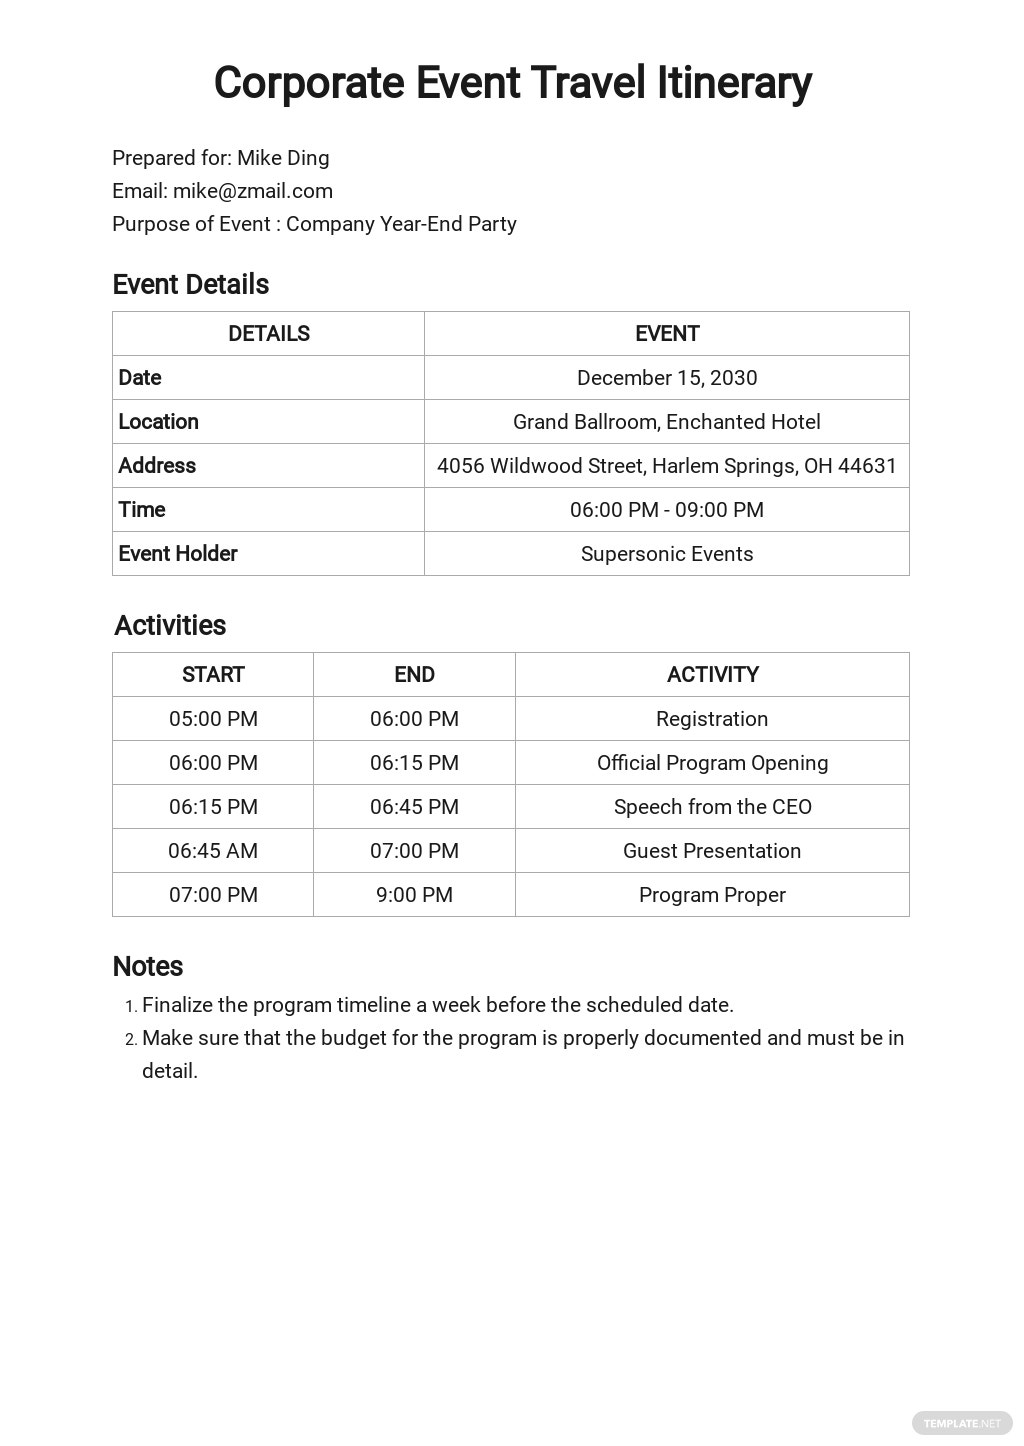 Corporate Event Travel Itinerary Template